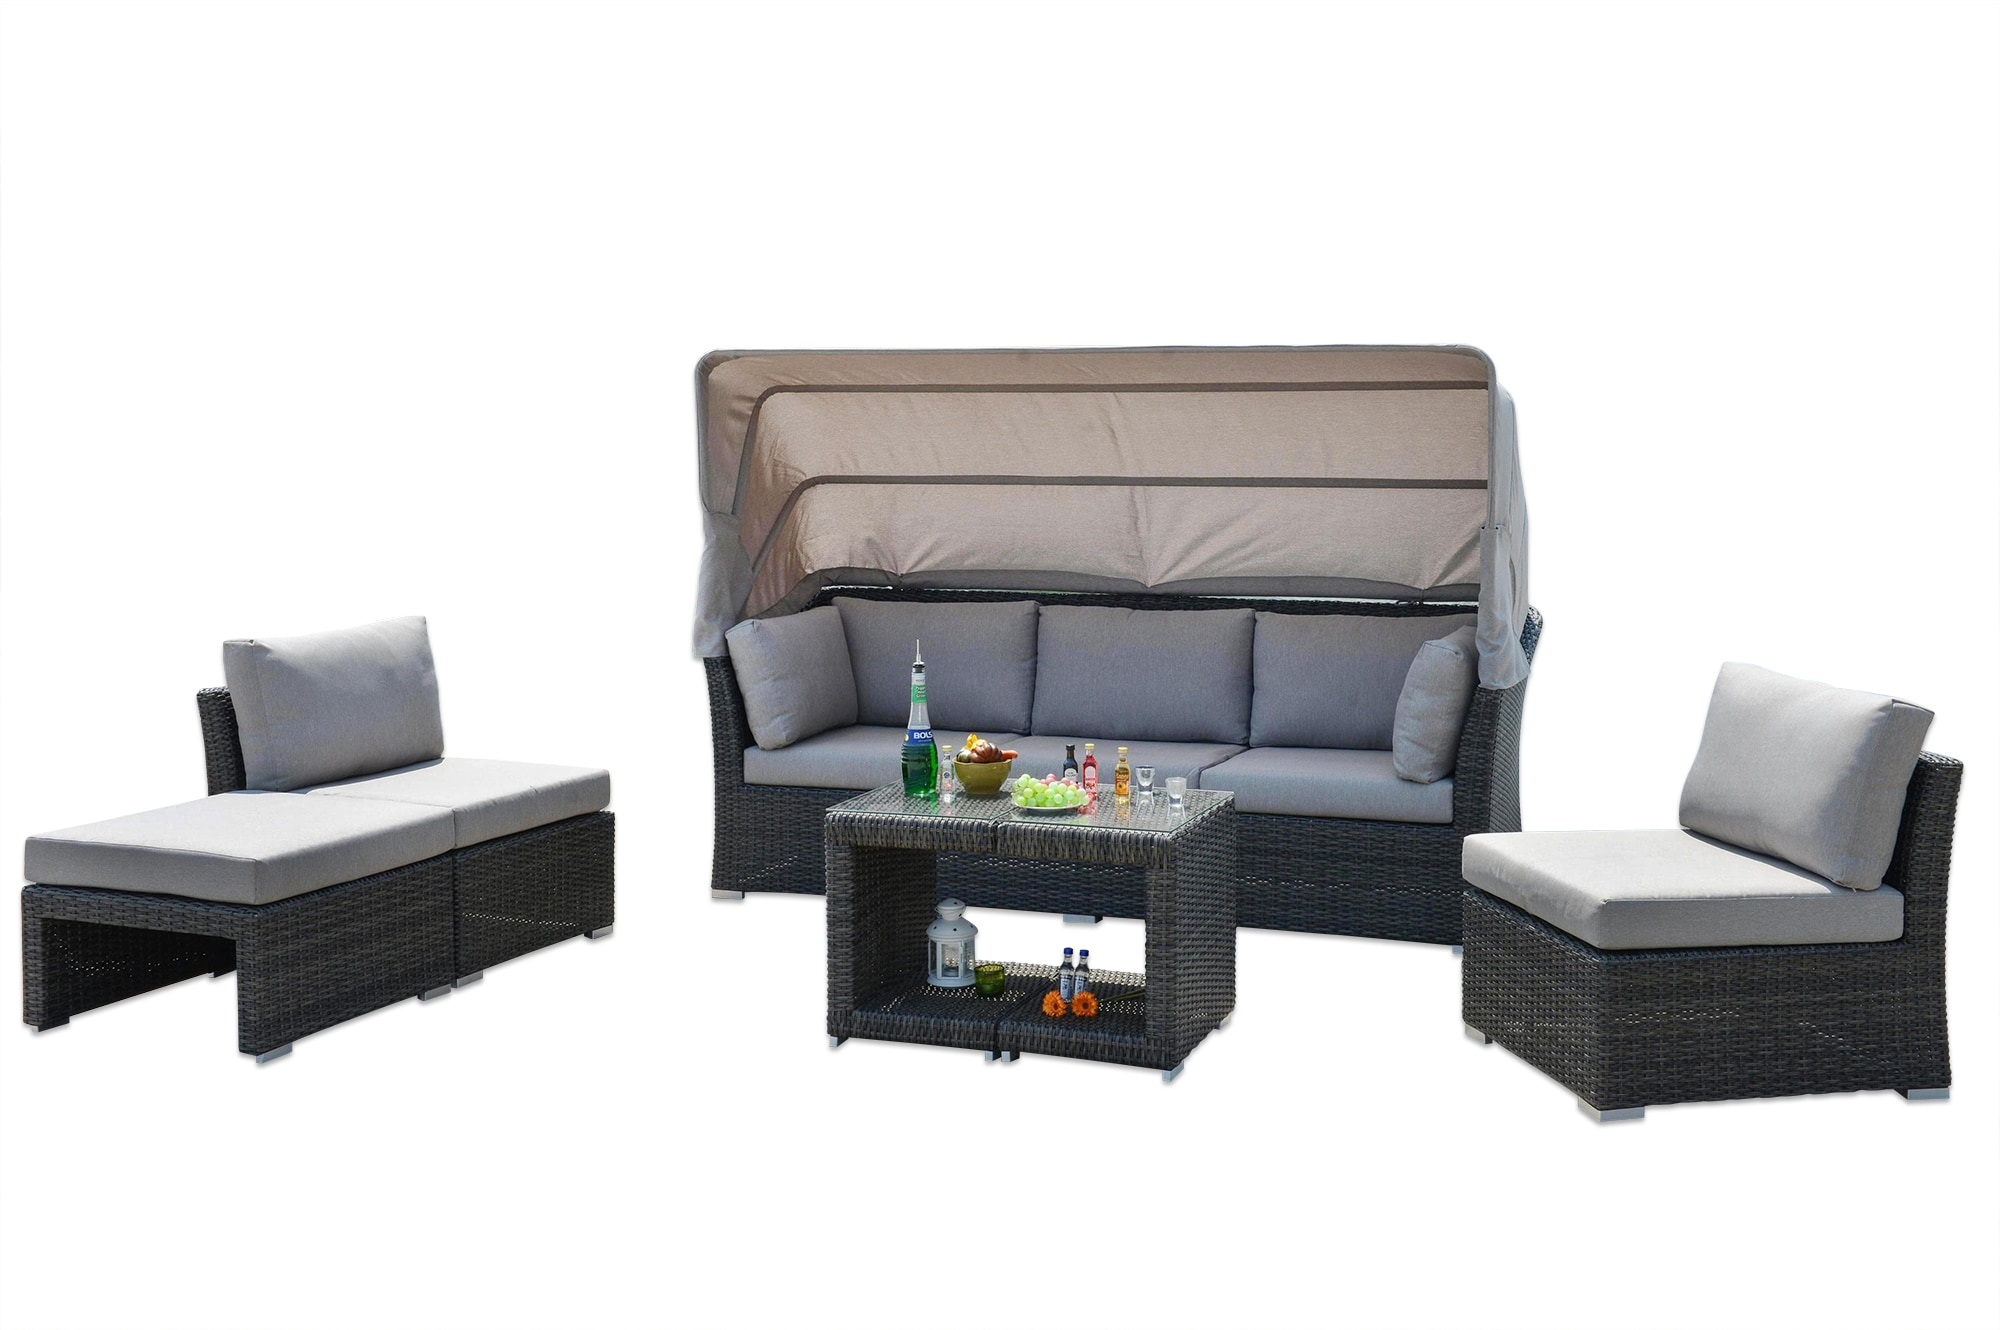 Kontiki Conversation Sets   Wicker Daybeds Bolsena Convertible Wicker DayBed